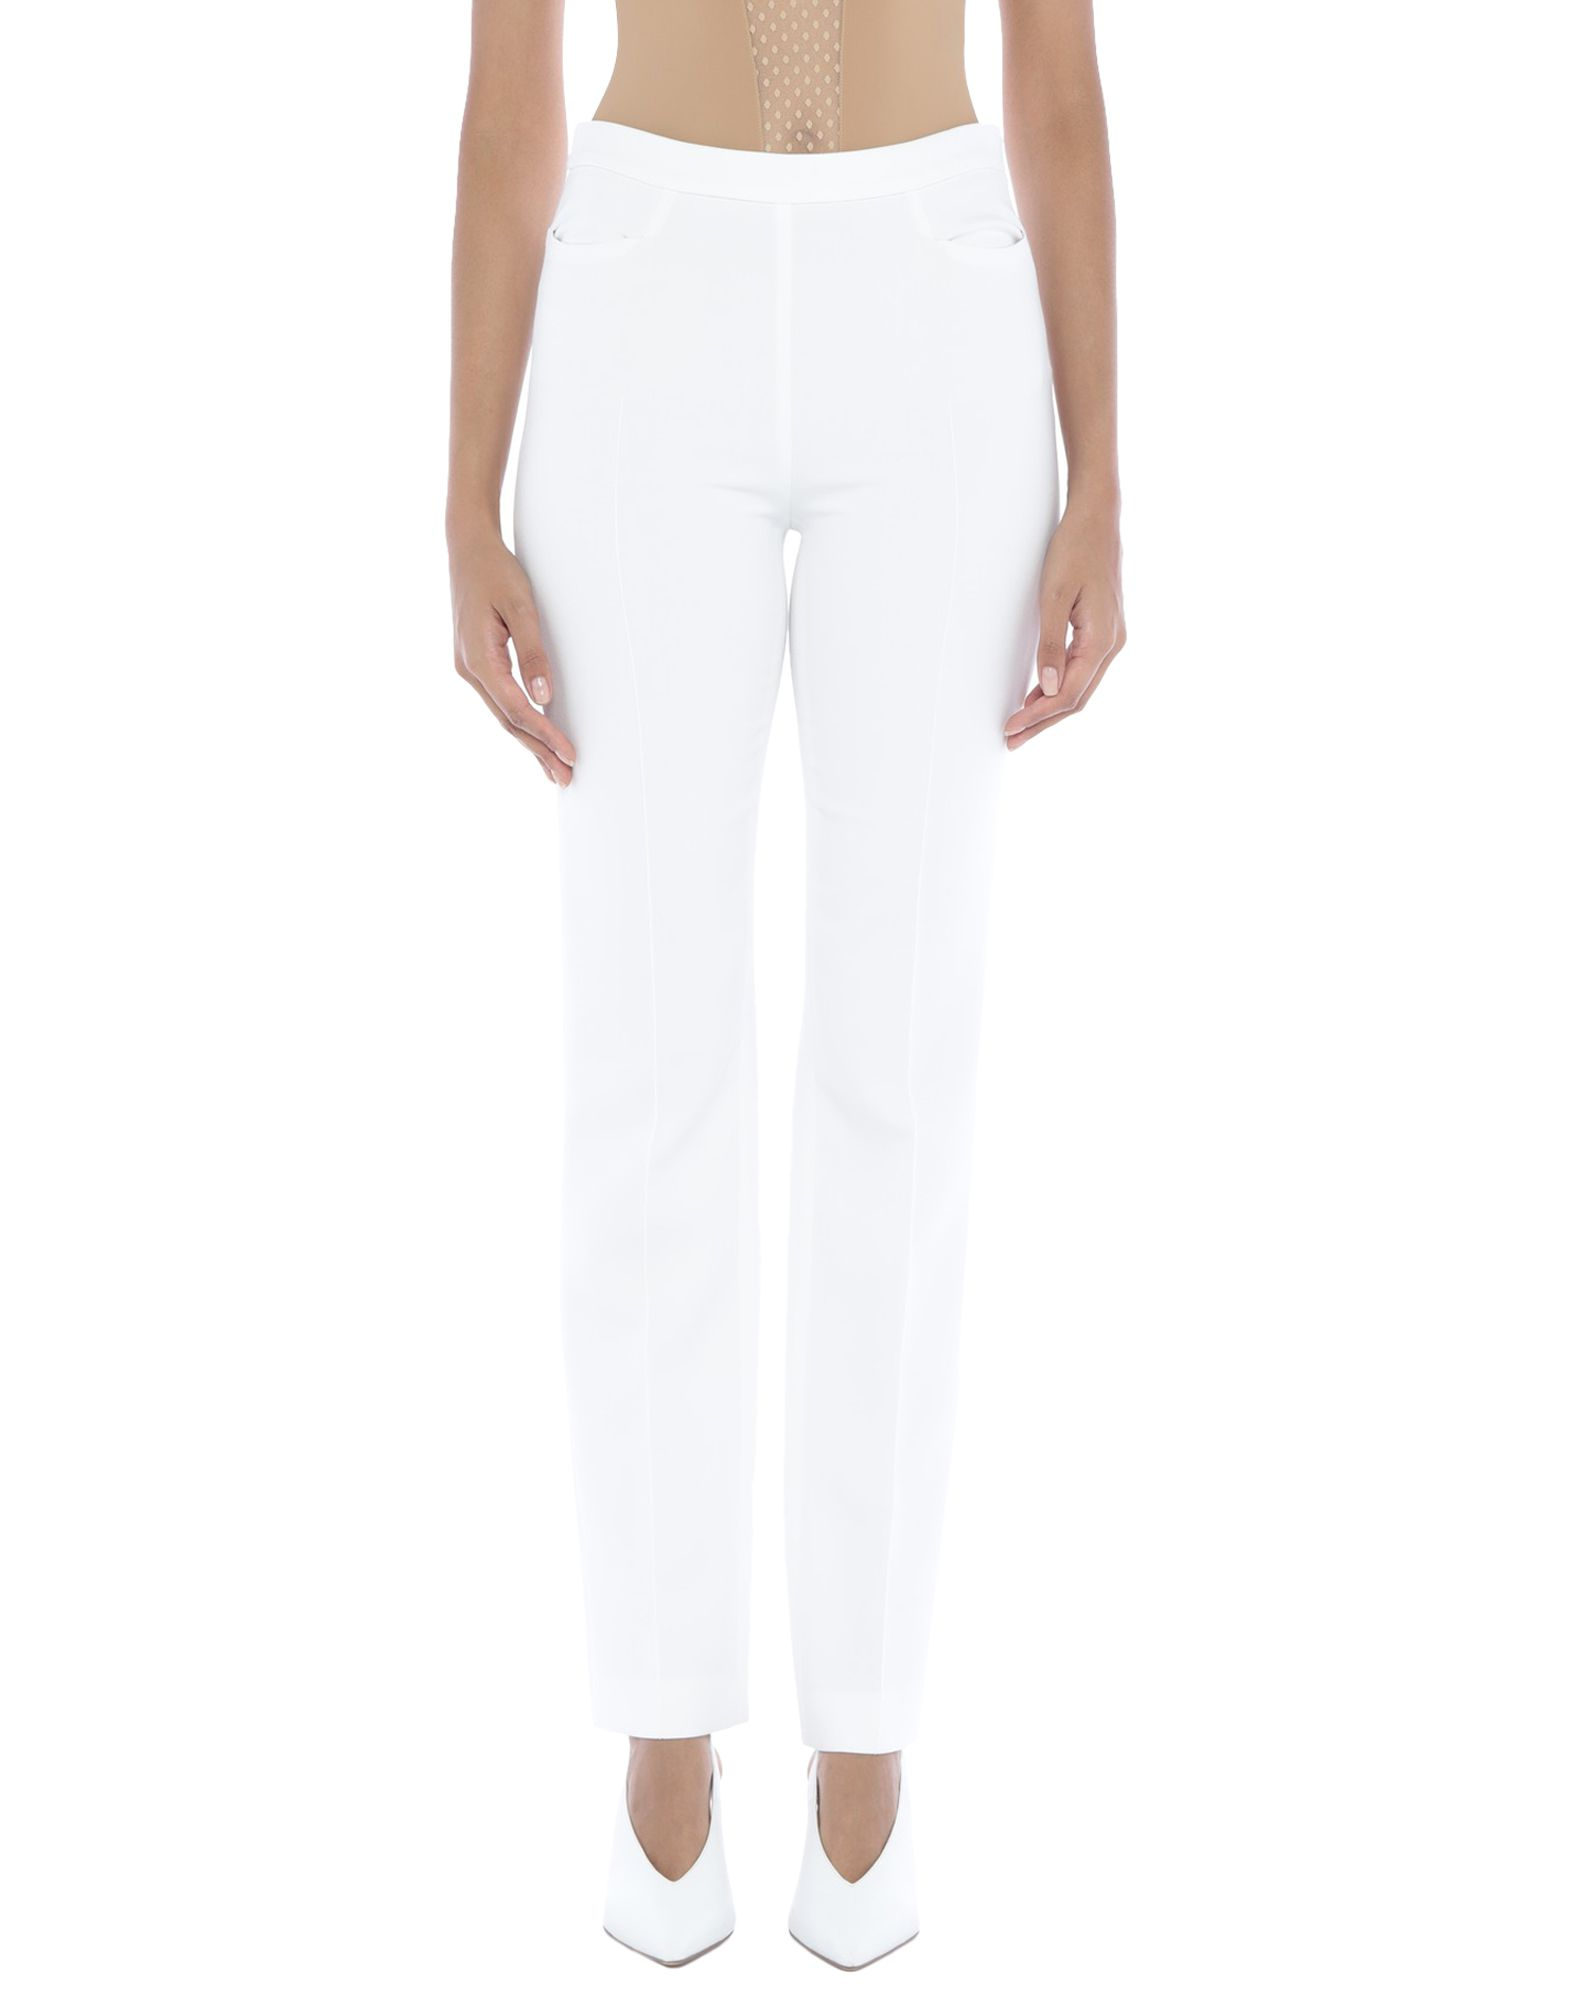 AKRIS PUNTO Casual pants. plain weave, darts, basic solid color, mid rise, regular fit, straight leg, zip, multipockets, stretch. 63% Polyester, 27% Viscose, 7% Cotton, 3% Elastane